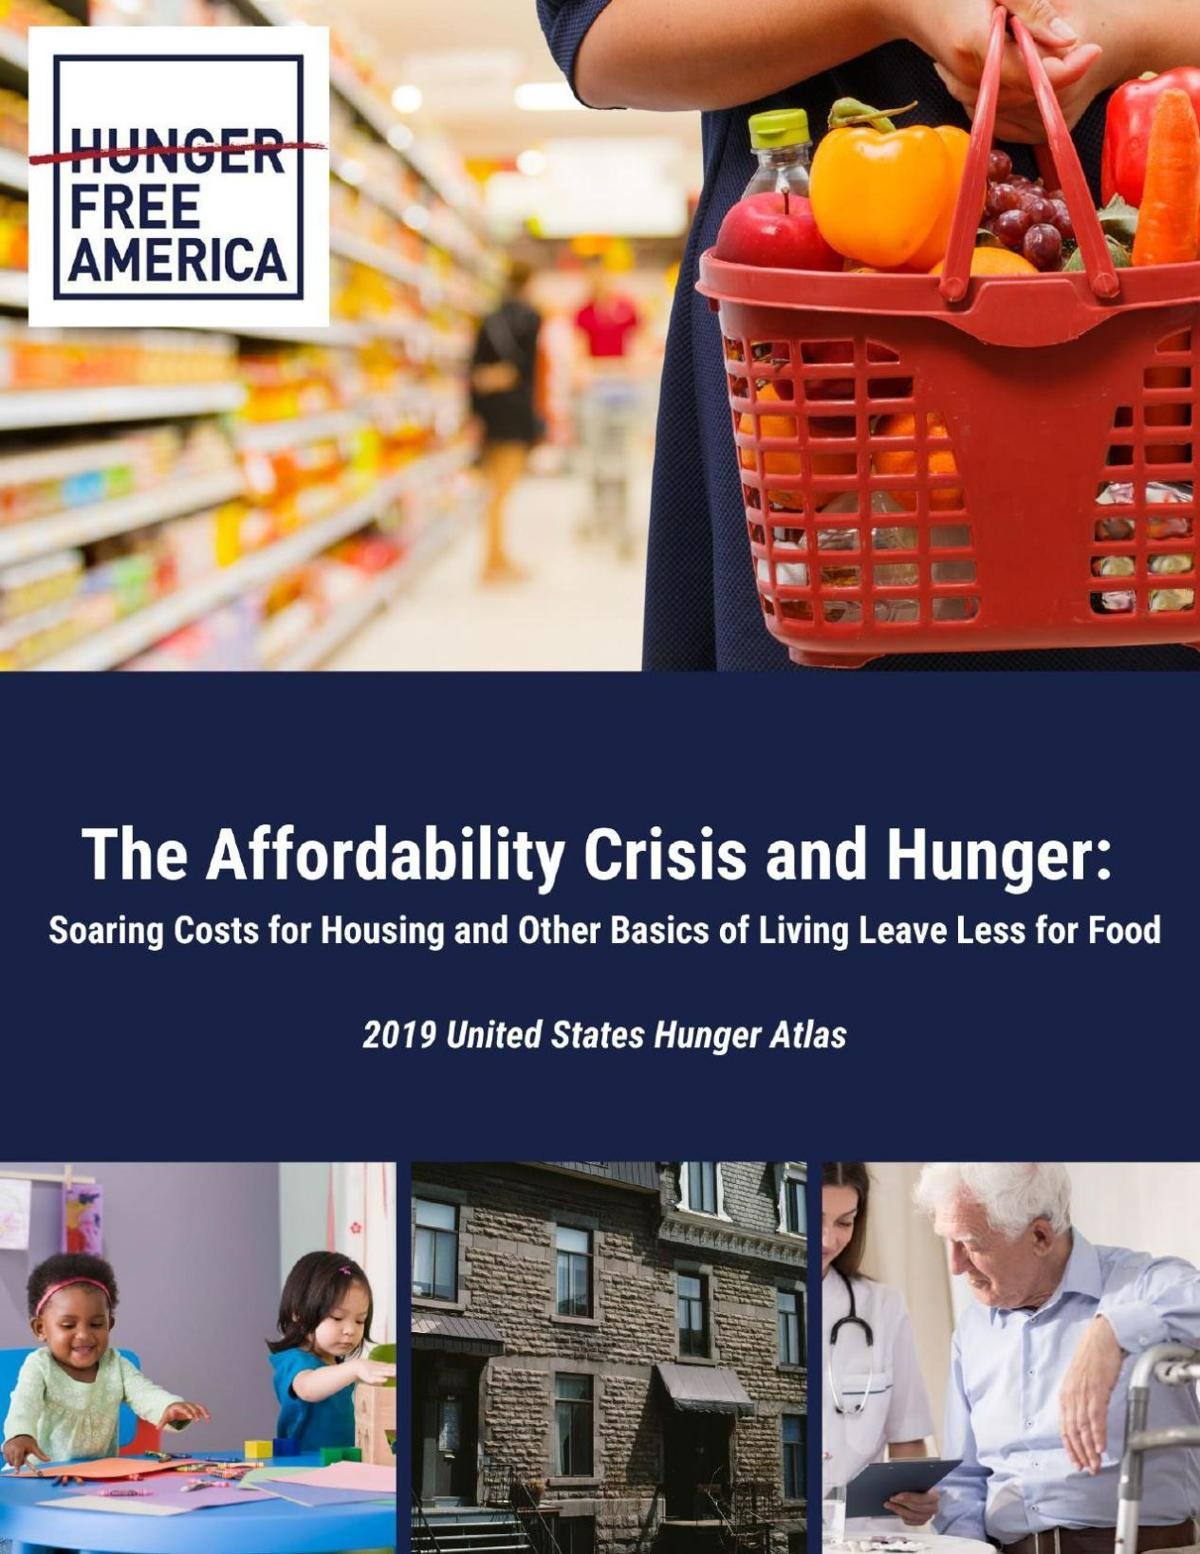 Report finds more than 11 percent of working Texas adults lack sufficient food